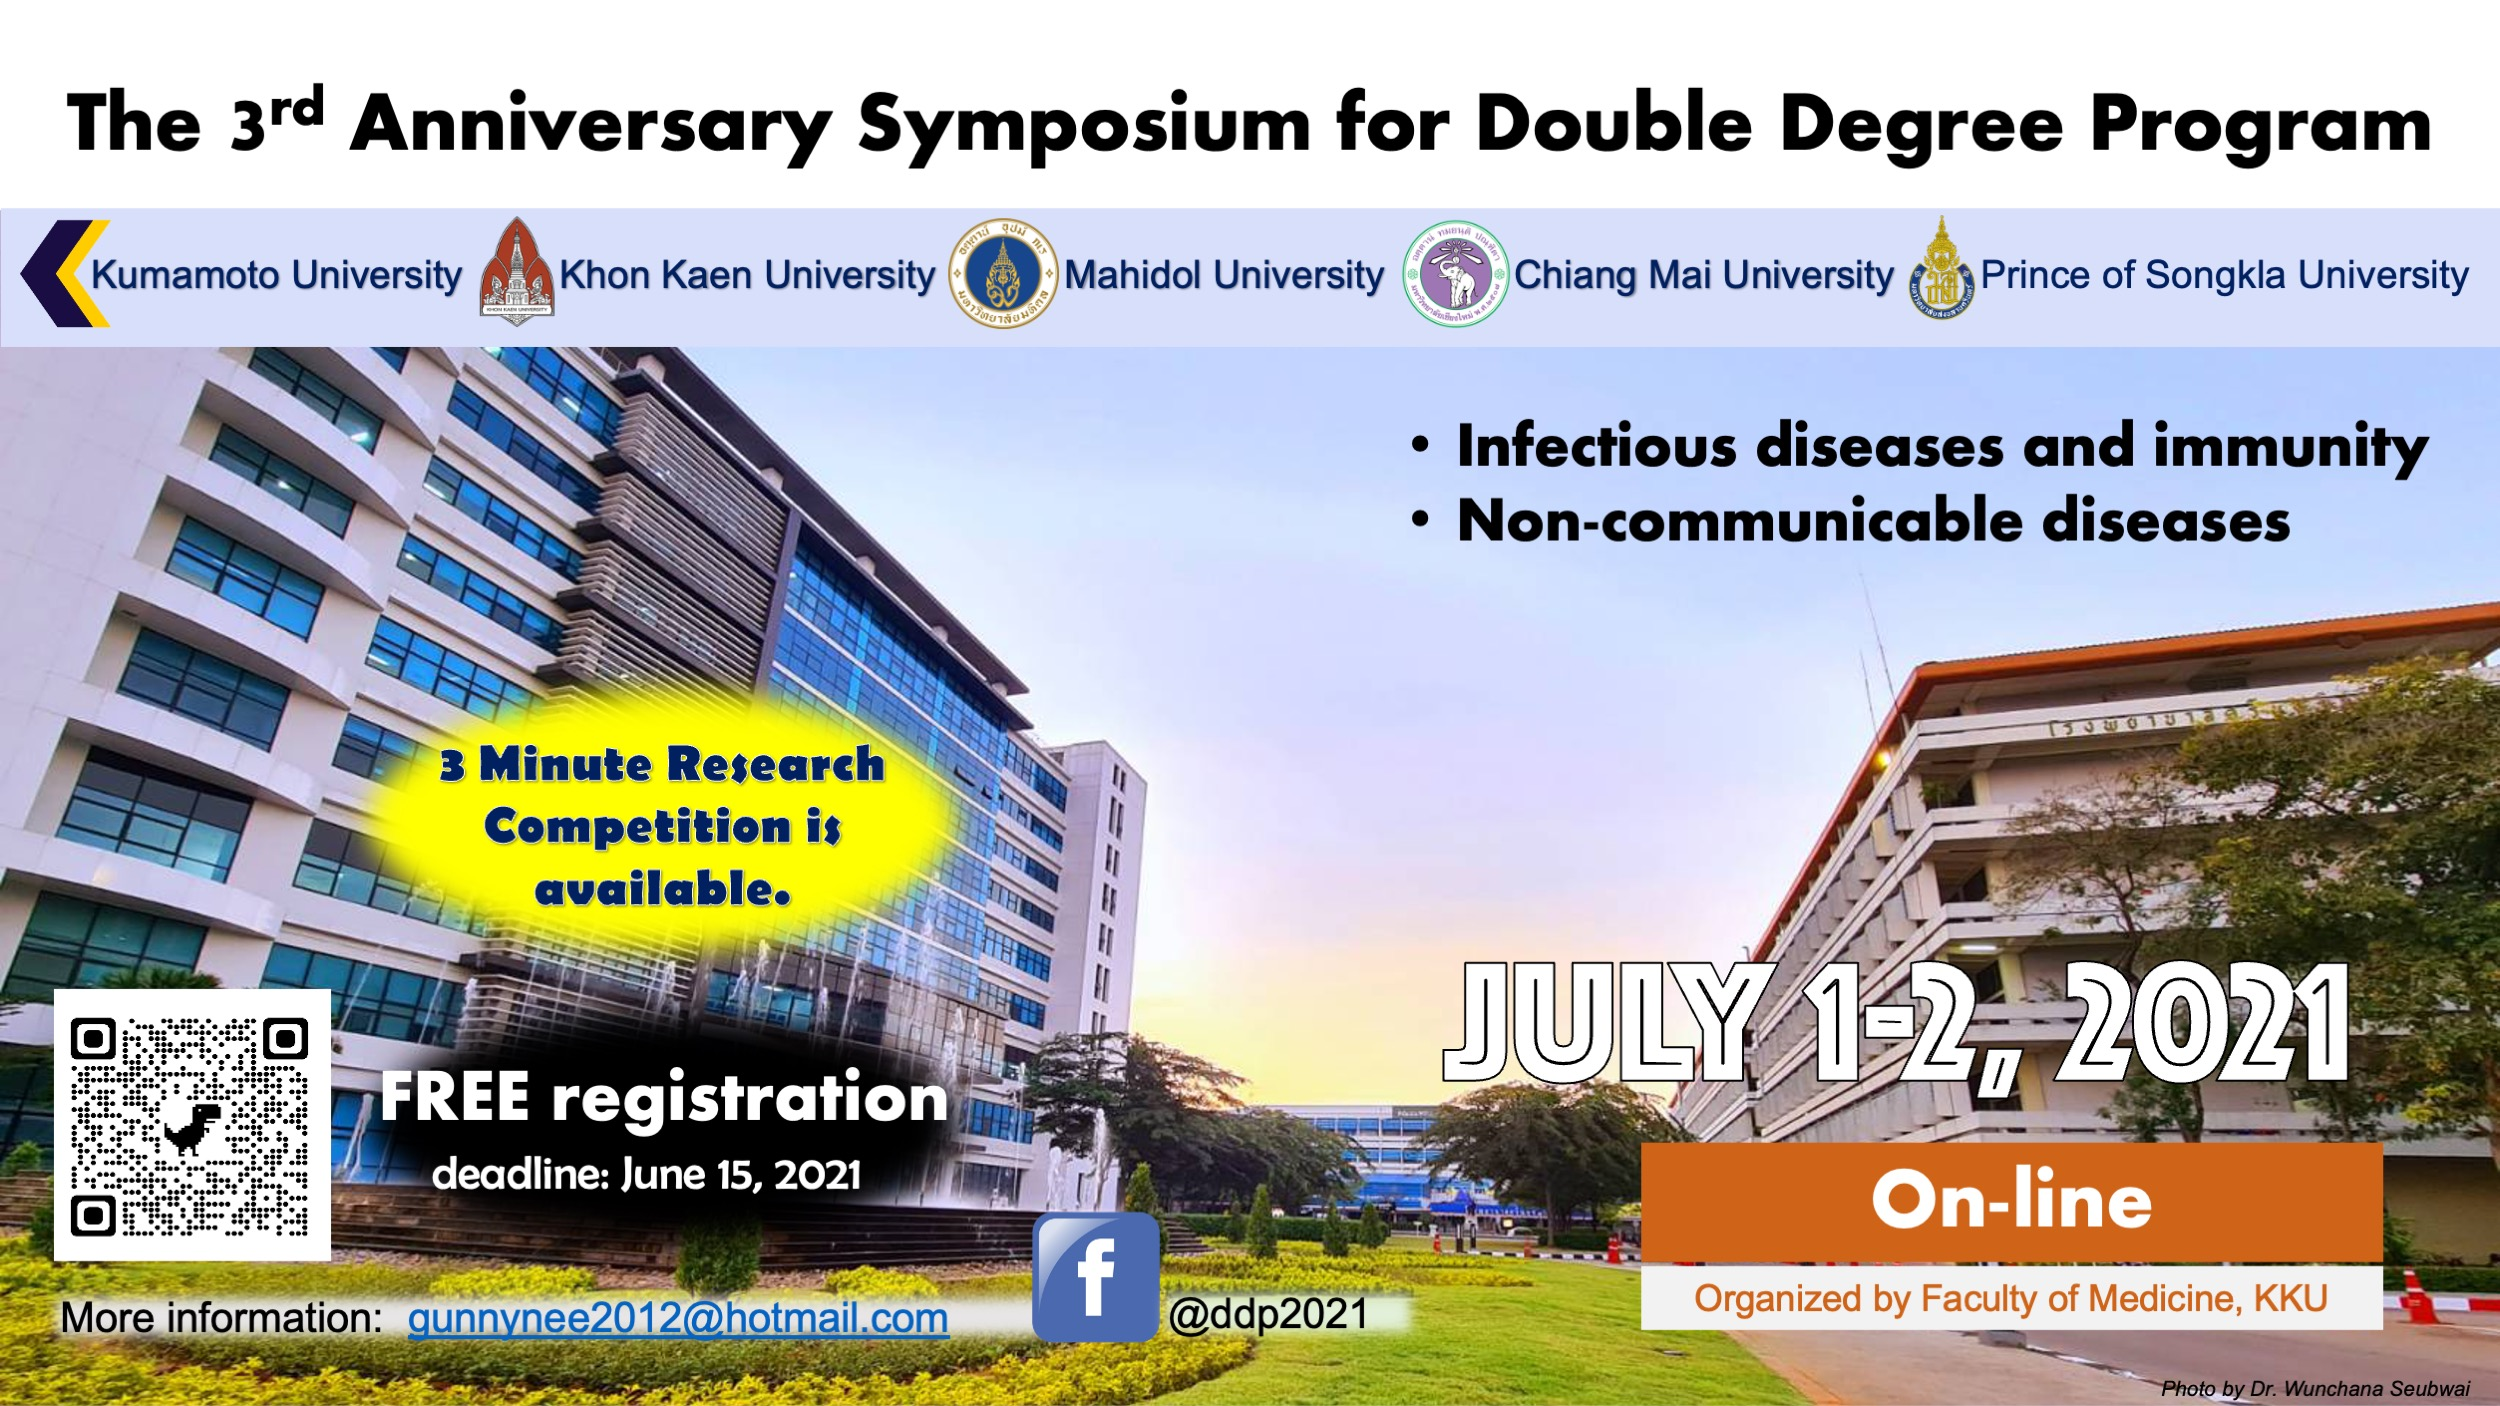 [Upcoming event] The 3rd Anniversary Symposium for Double Degree Program